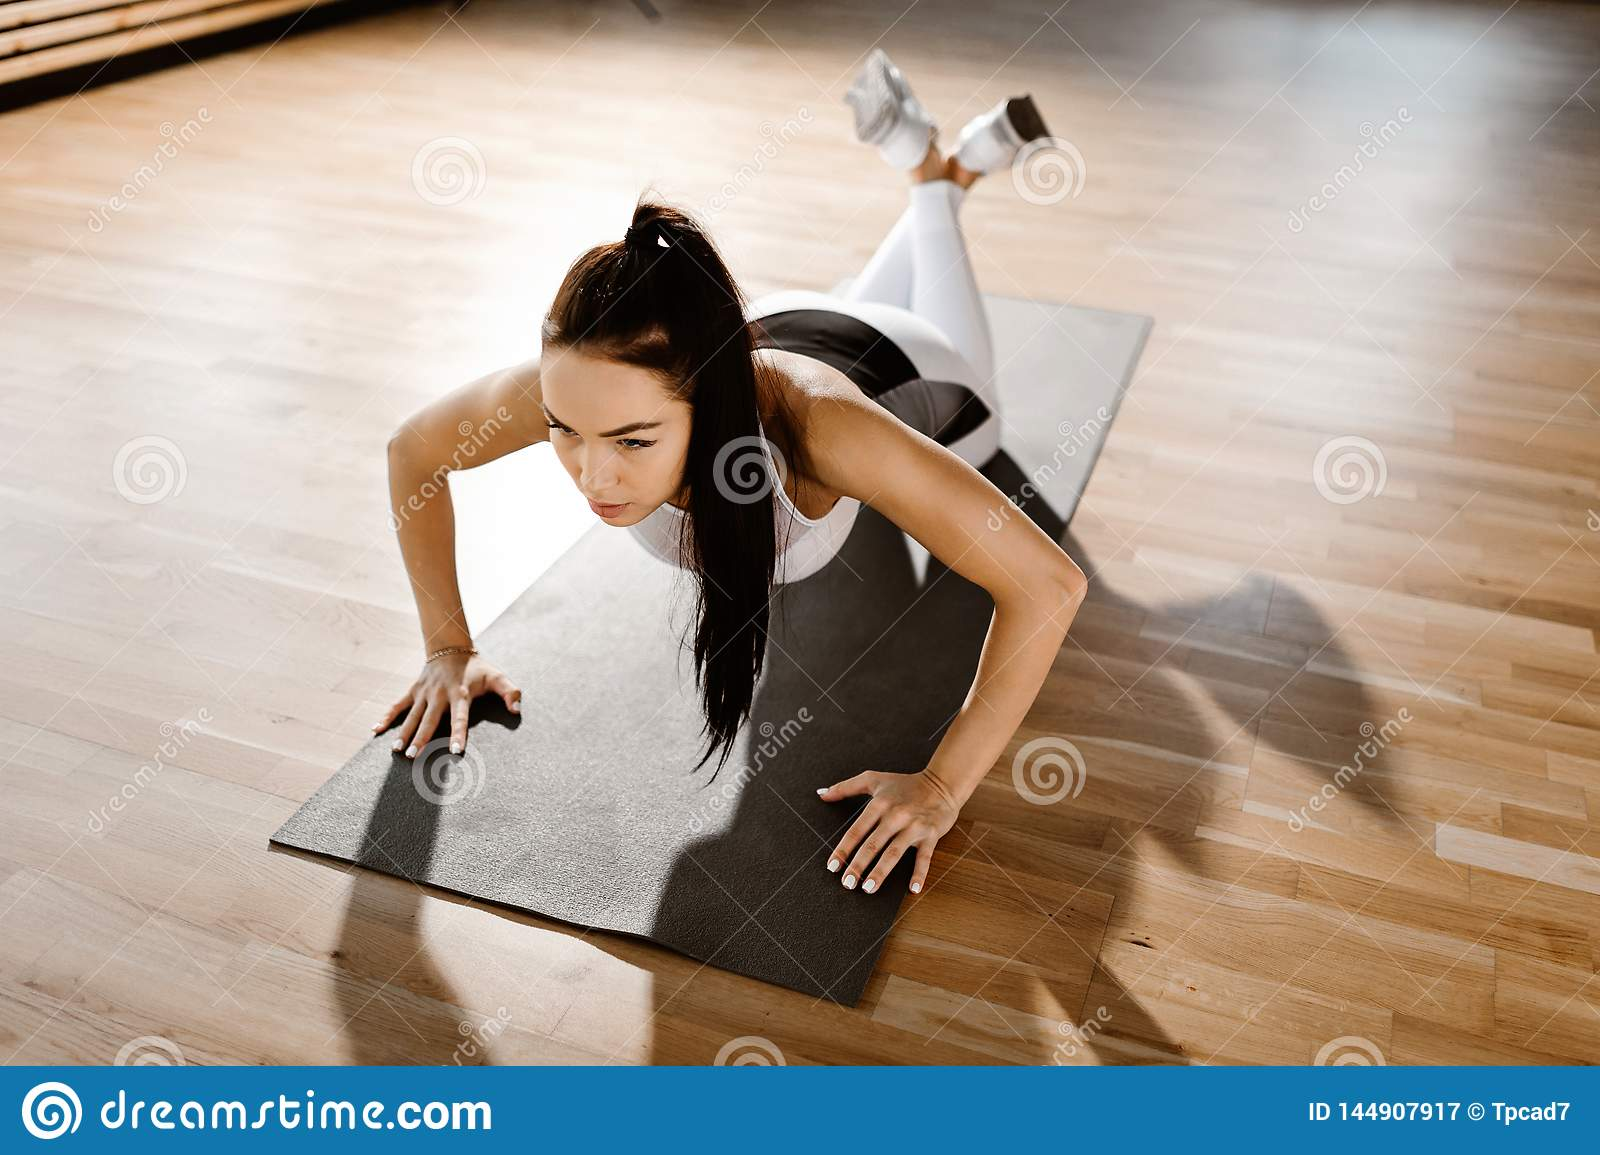 Oung slim dark-haired girl dressed in white sports clothes is doing push ups in the gym